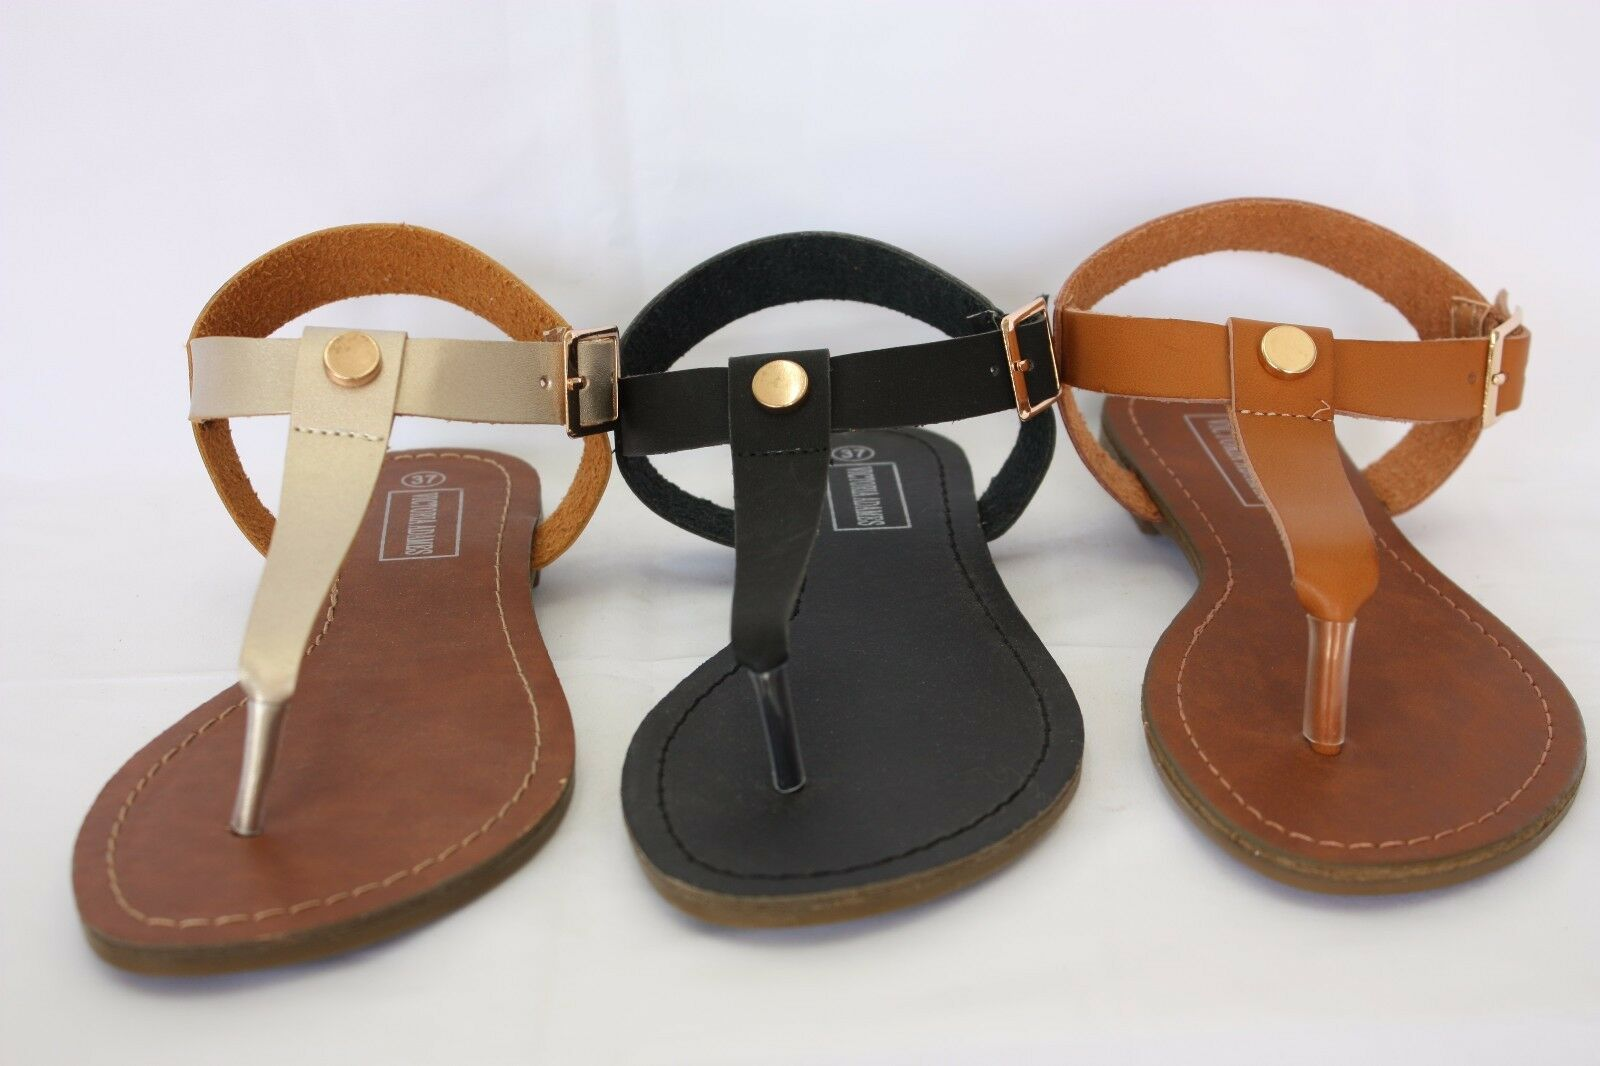 New KATE Thong Women Sandals Shoes Gladiator Thong KATE Flops T Strap Flip Flat Strappy a8308e